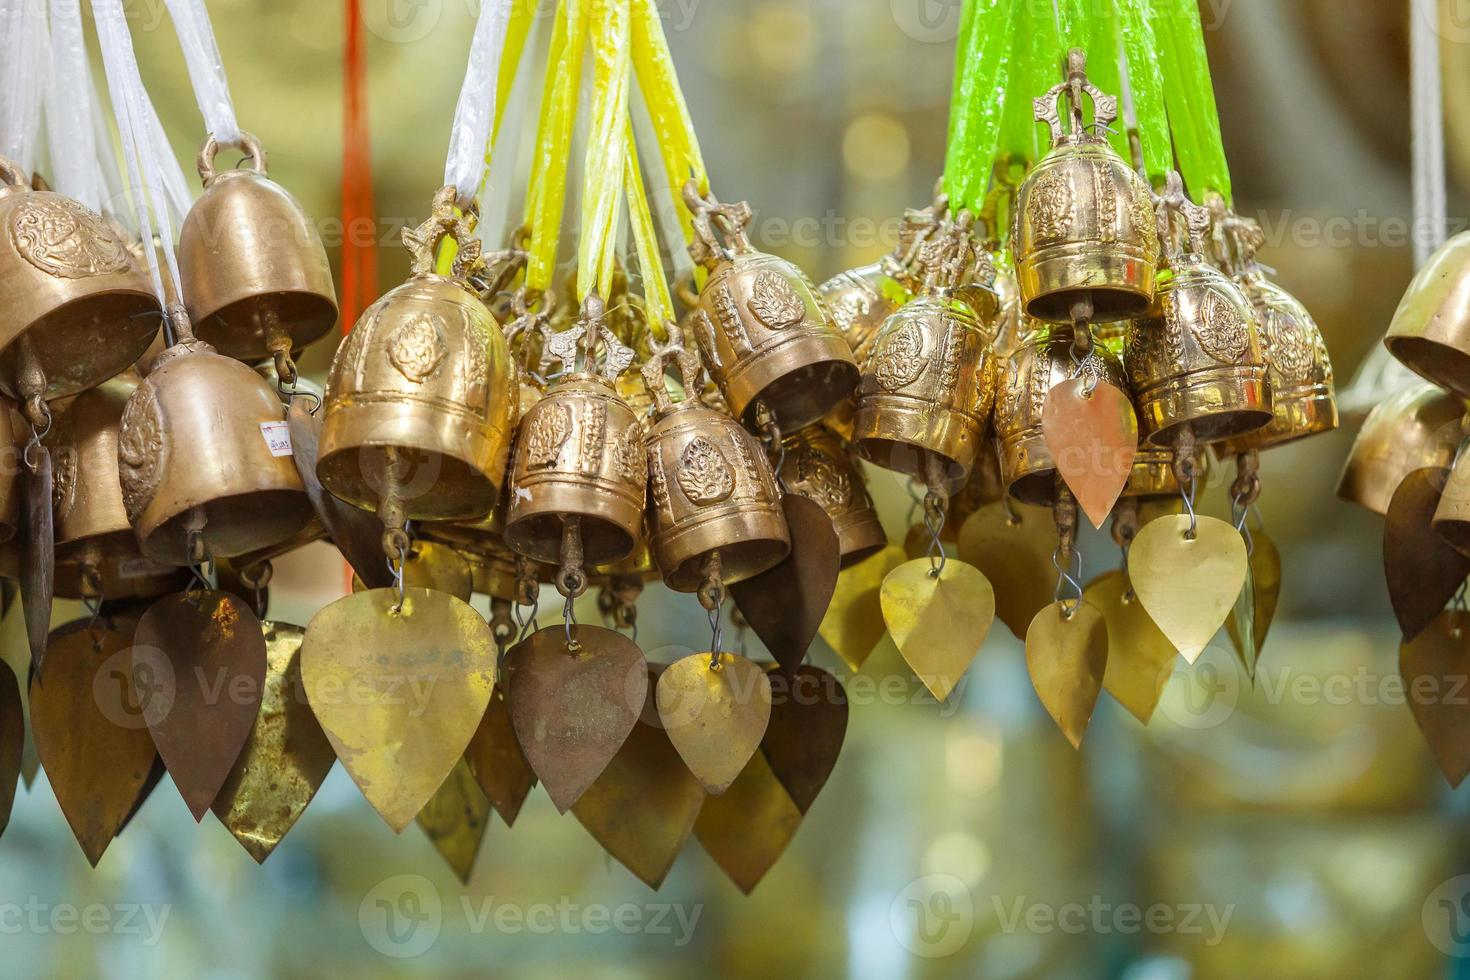 tradition asian bell in Big Buddha temple complex photo